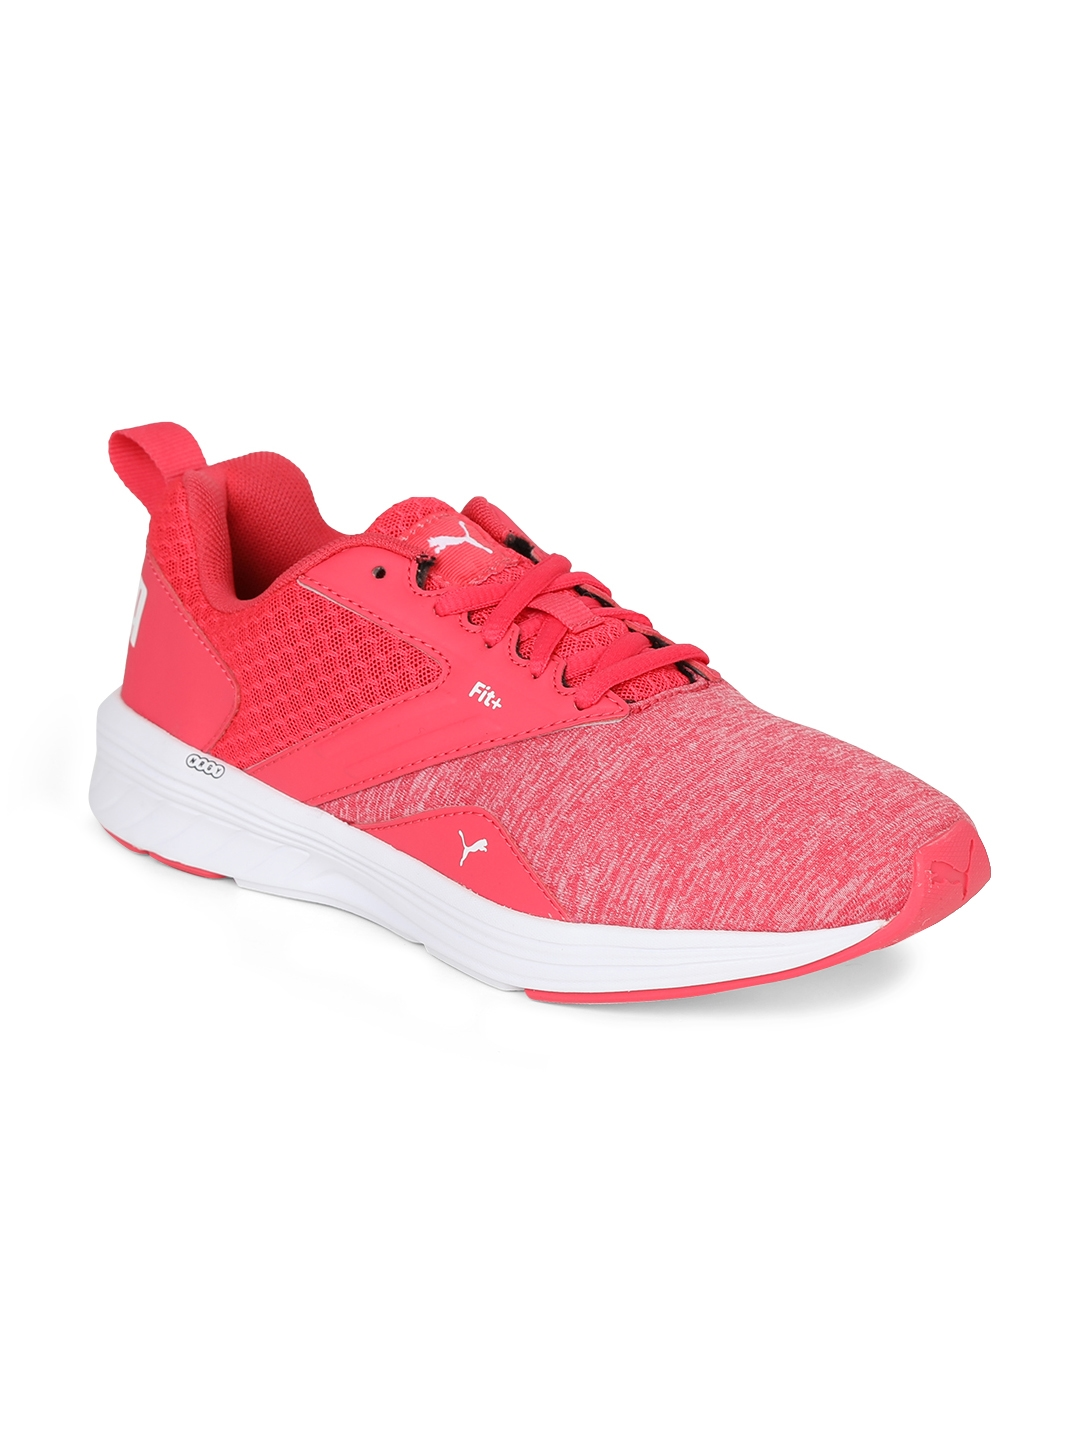 cc8fb40bac70 Buy Puma Unisex Pink NRGY Comet Running Shoes - Sports Shoes for ...